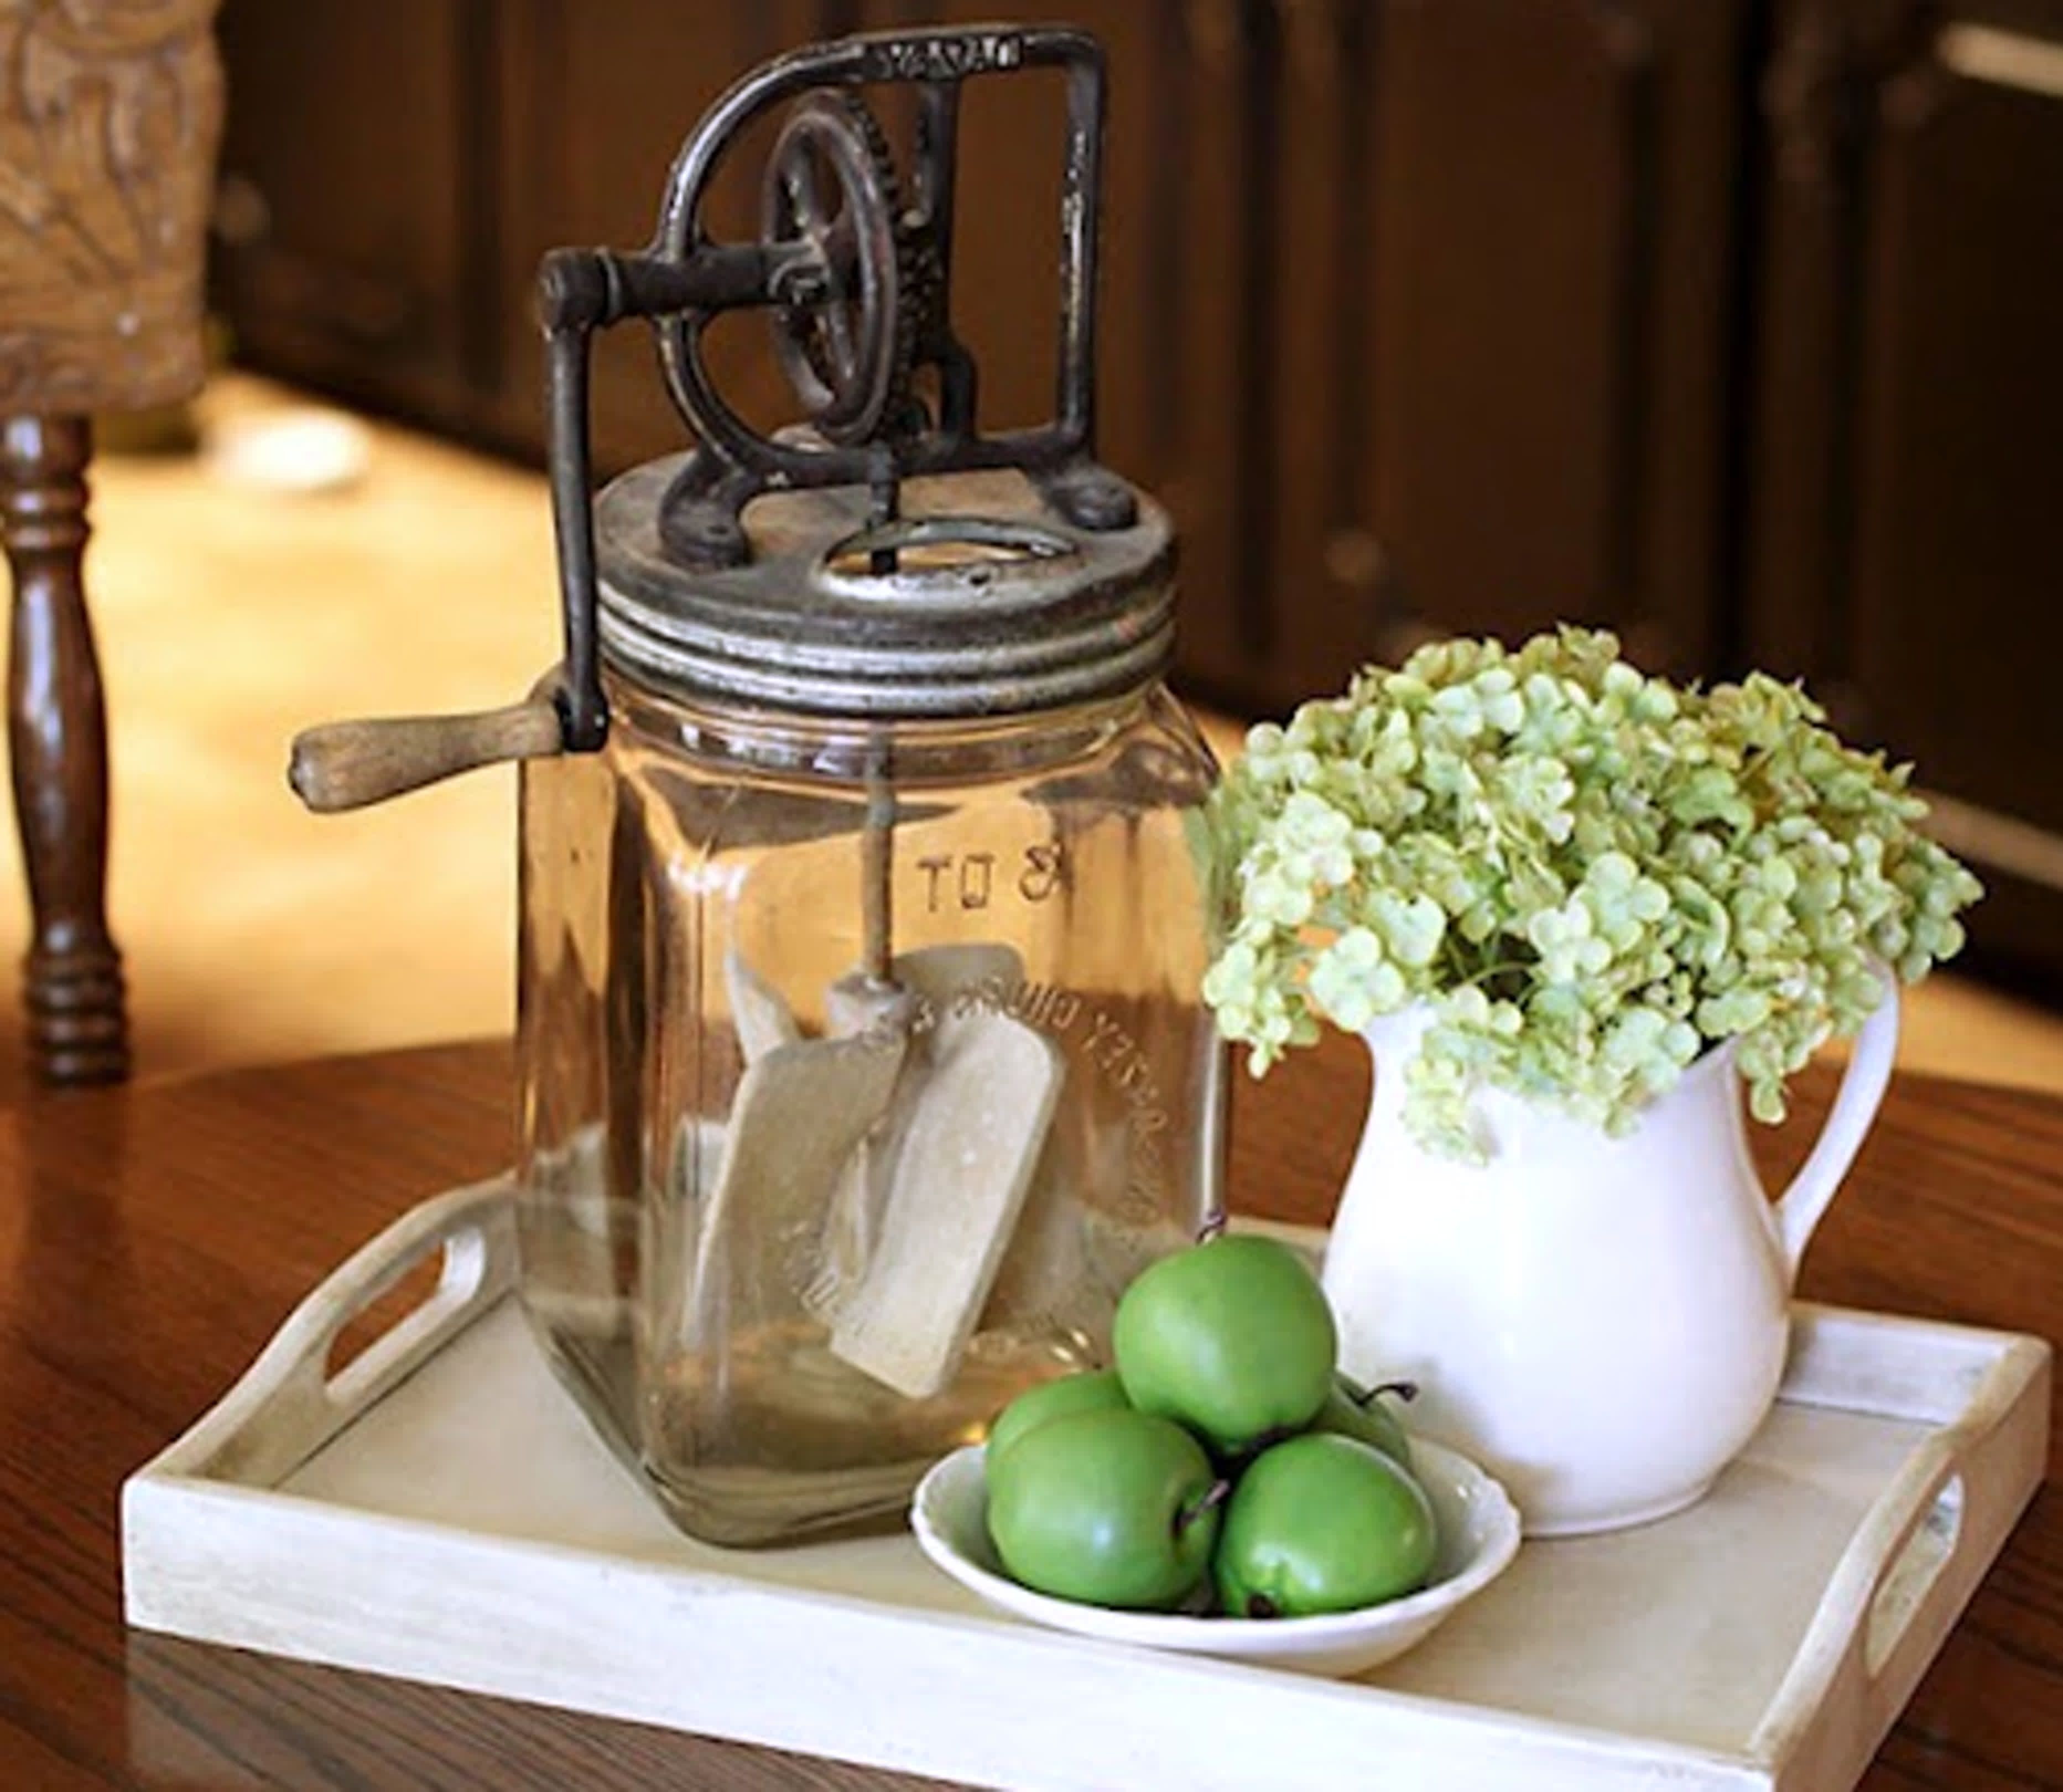 Everyday Kitchen Table Centerpiece Ideas Everyday Dining Table